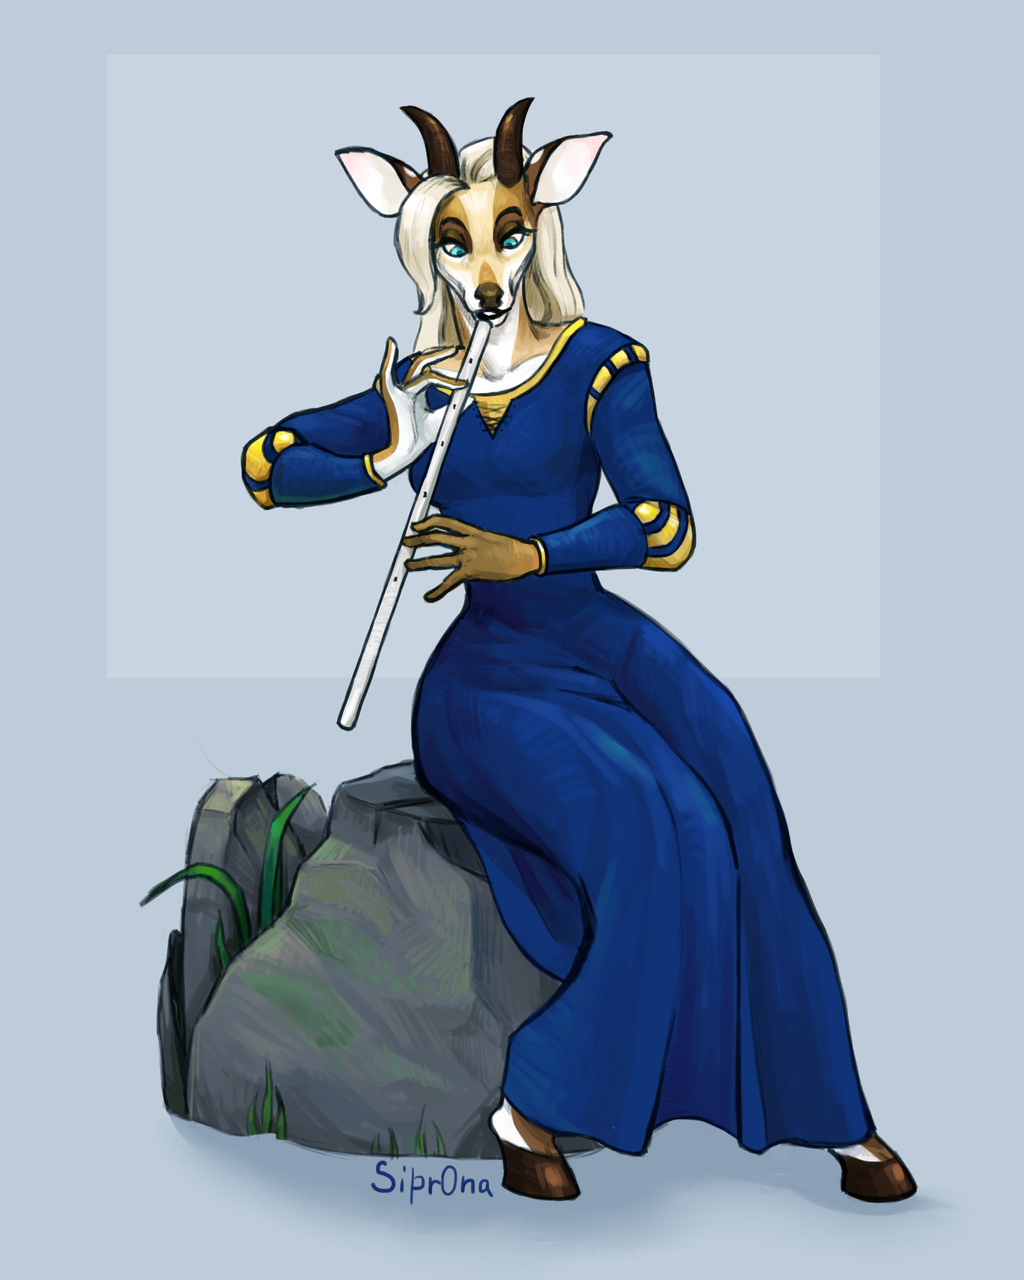 Lady and flute by Sipr0na